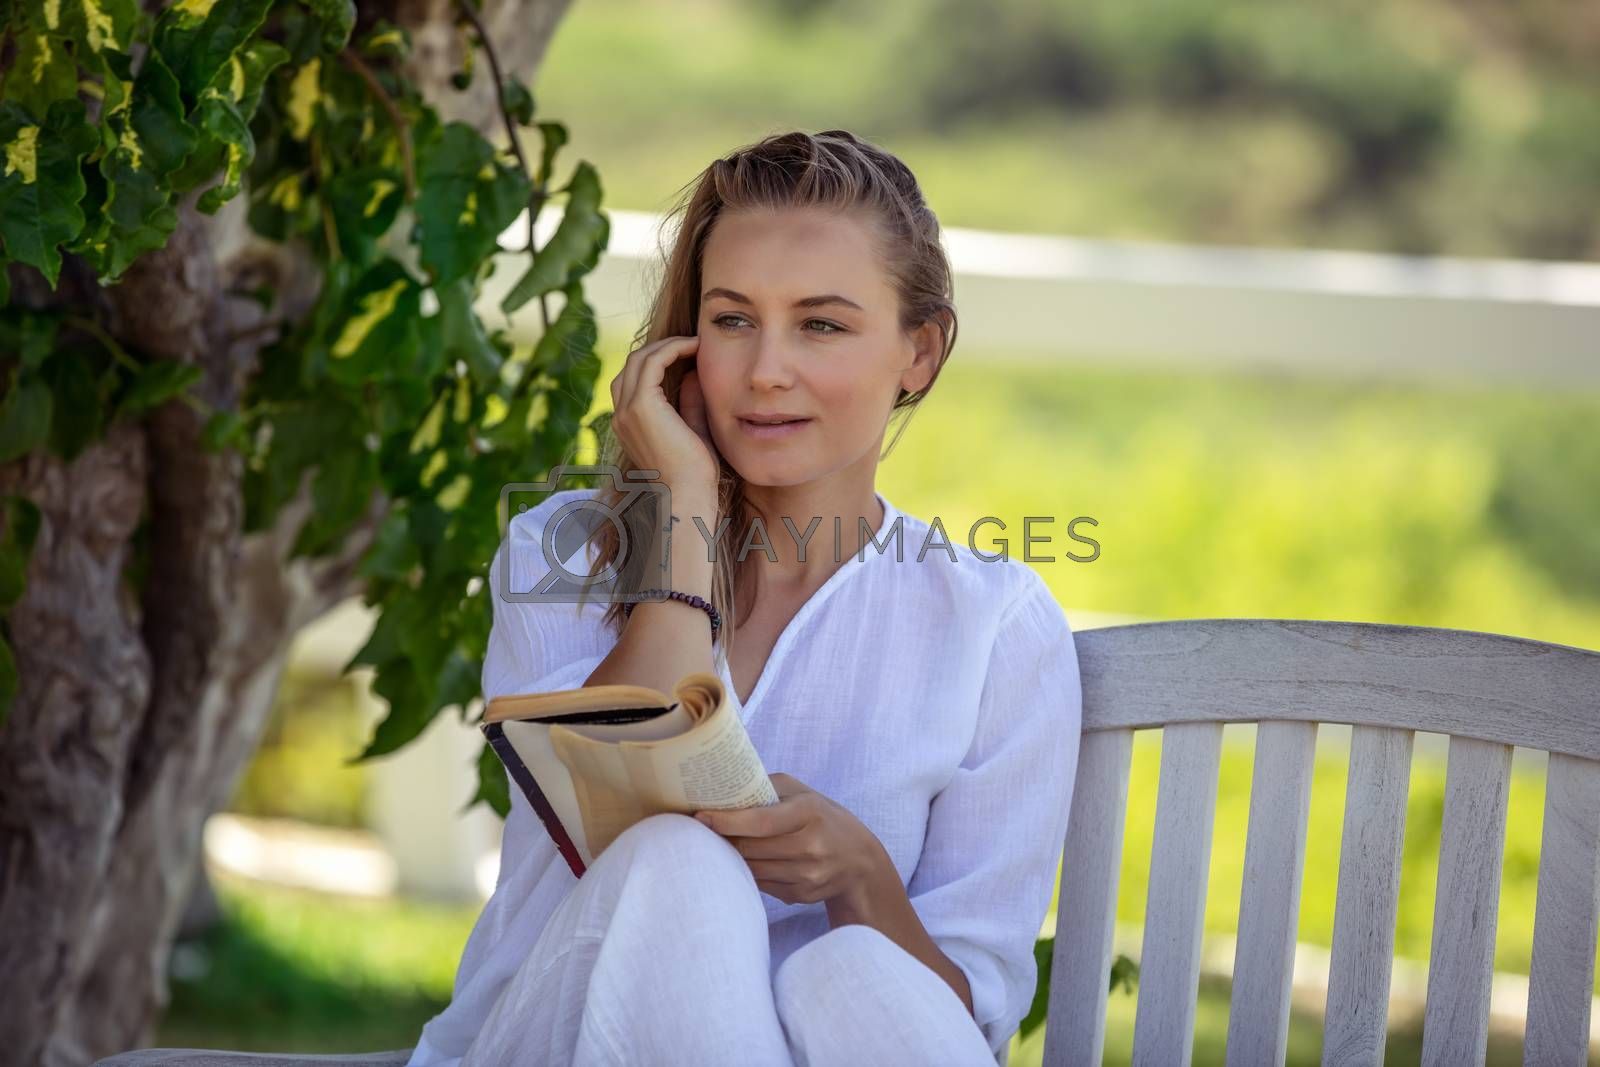 Portrait of a Pretty Female in the Summer Park Sits on the Bench and with Pleasure Reading a Book. Enjoying Interesting Story. Education Outdoors. Leisure Time.